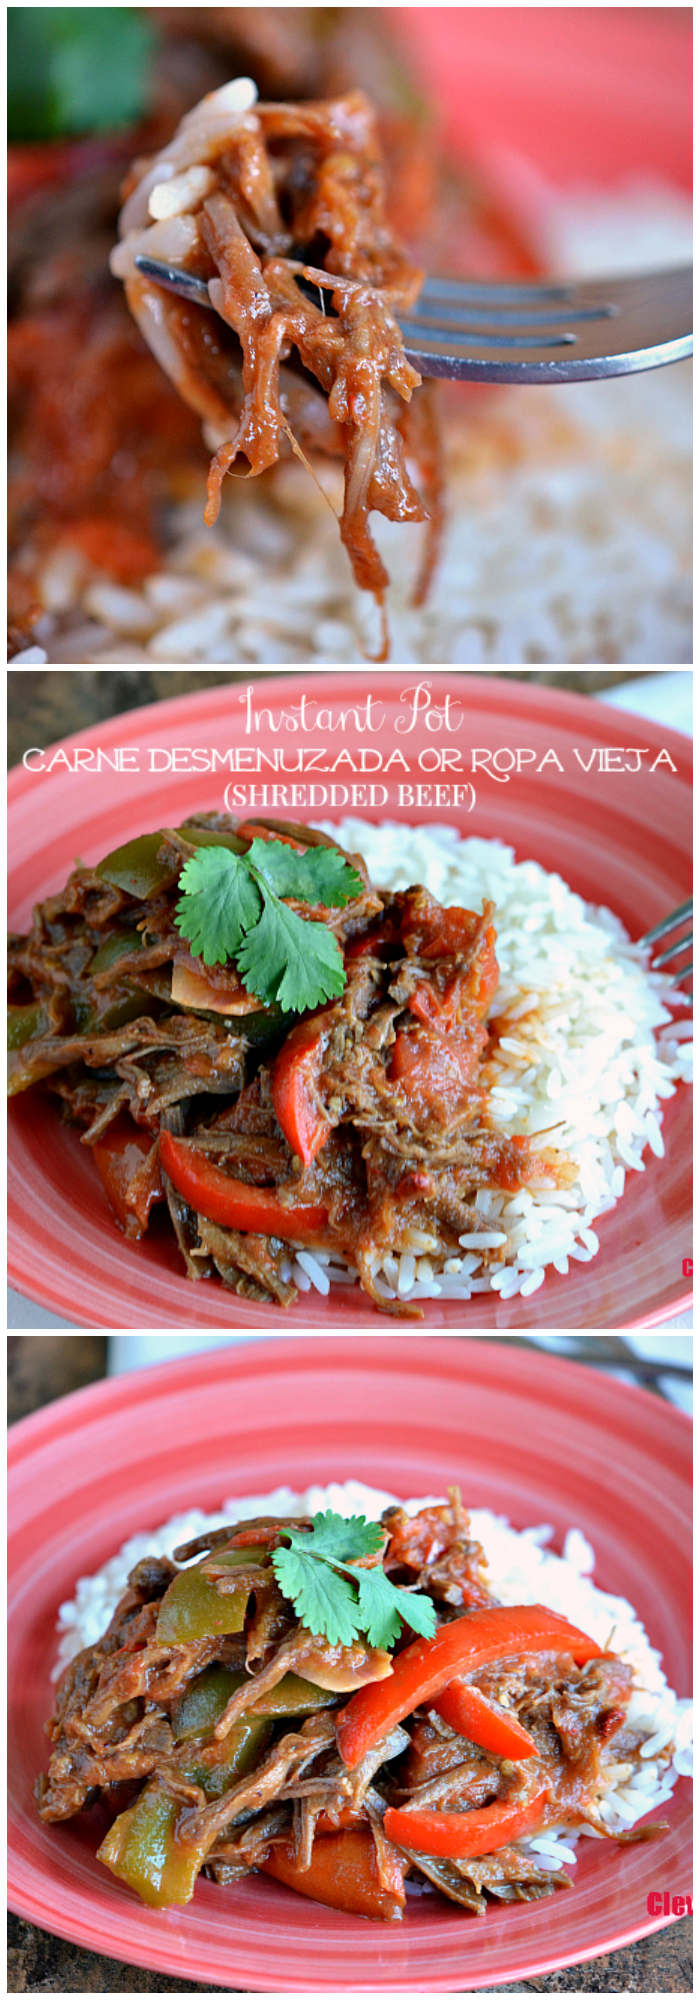 Make this easy Nicaraguan-inspired Instant Pot Carne Desmenuzada or Ropa Vieja (Shredded Beef) any day of the week in under 20 minutes! Get the recipe at CleverlyMe.com